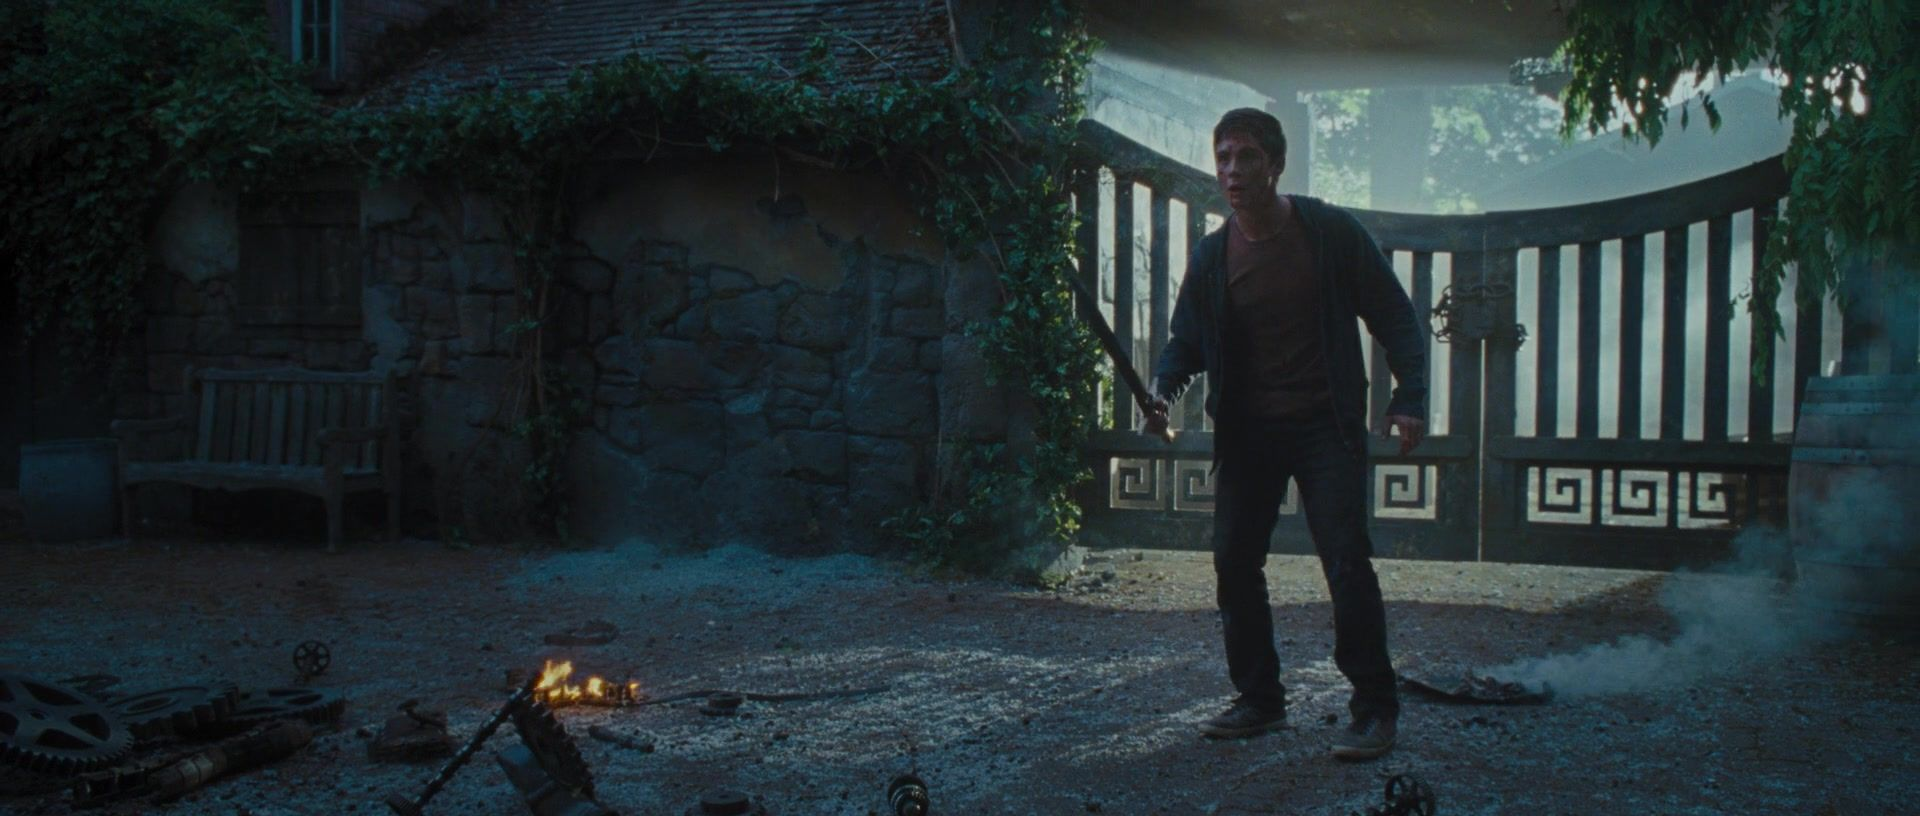 Percy Jackson: Sea of Monsters - Percy Jackson Sea Of Monsters 2013 1080p kissthemgoodbye net 0728 - High Quality MOVIE SCREENCAPS Gallery